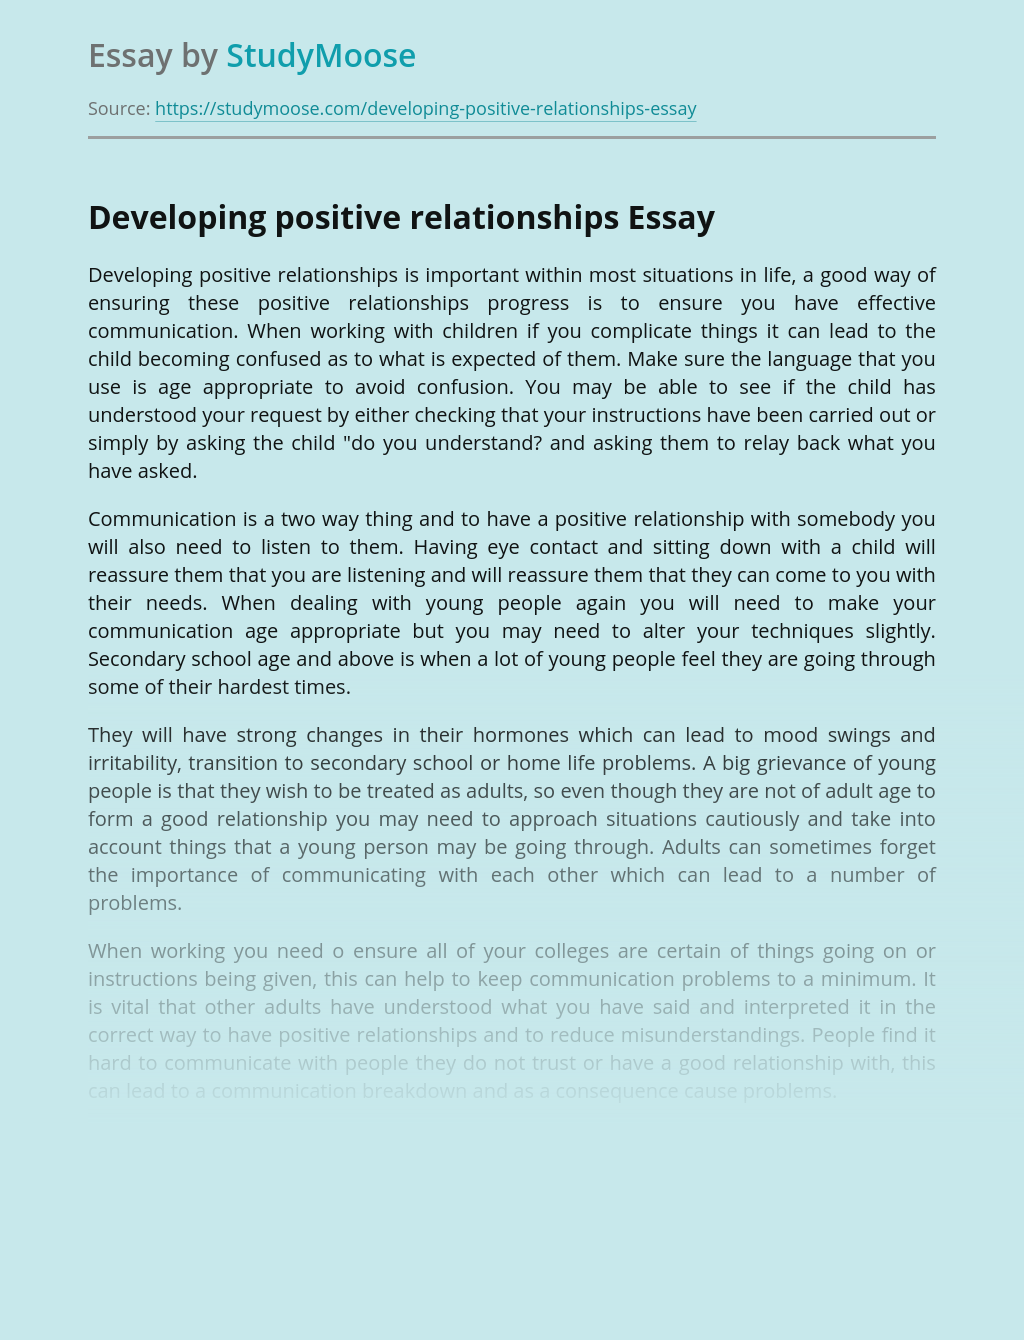 Developing positive relationships